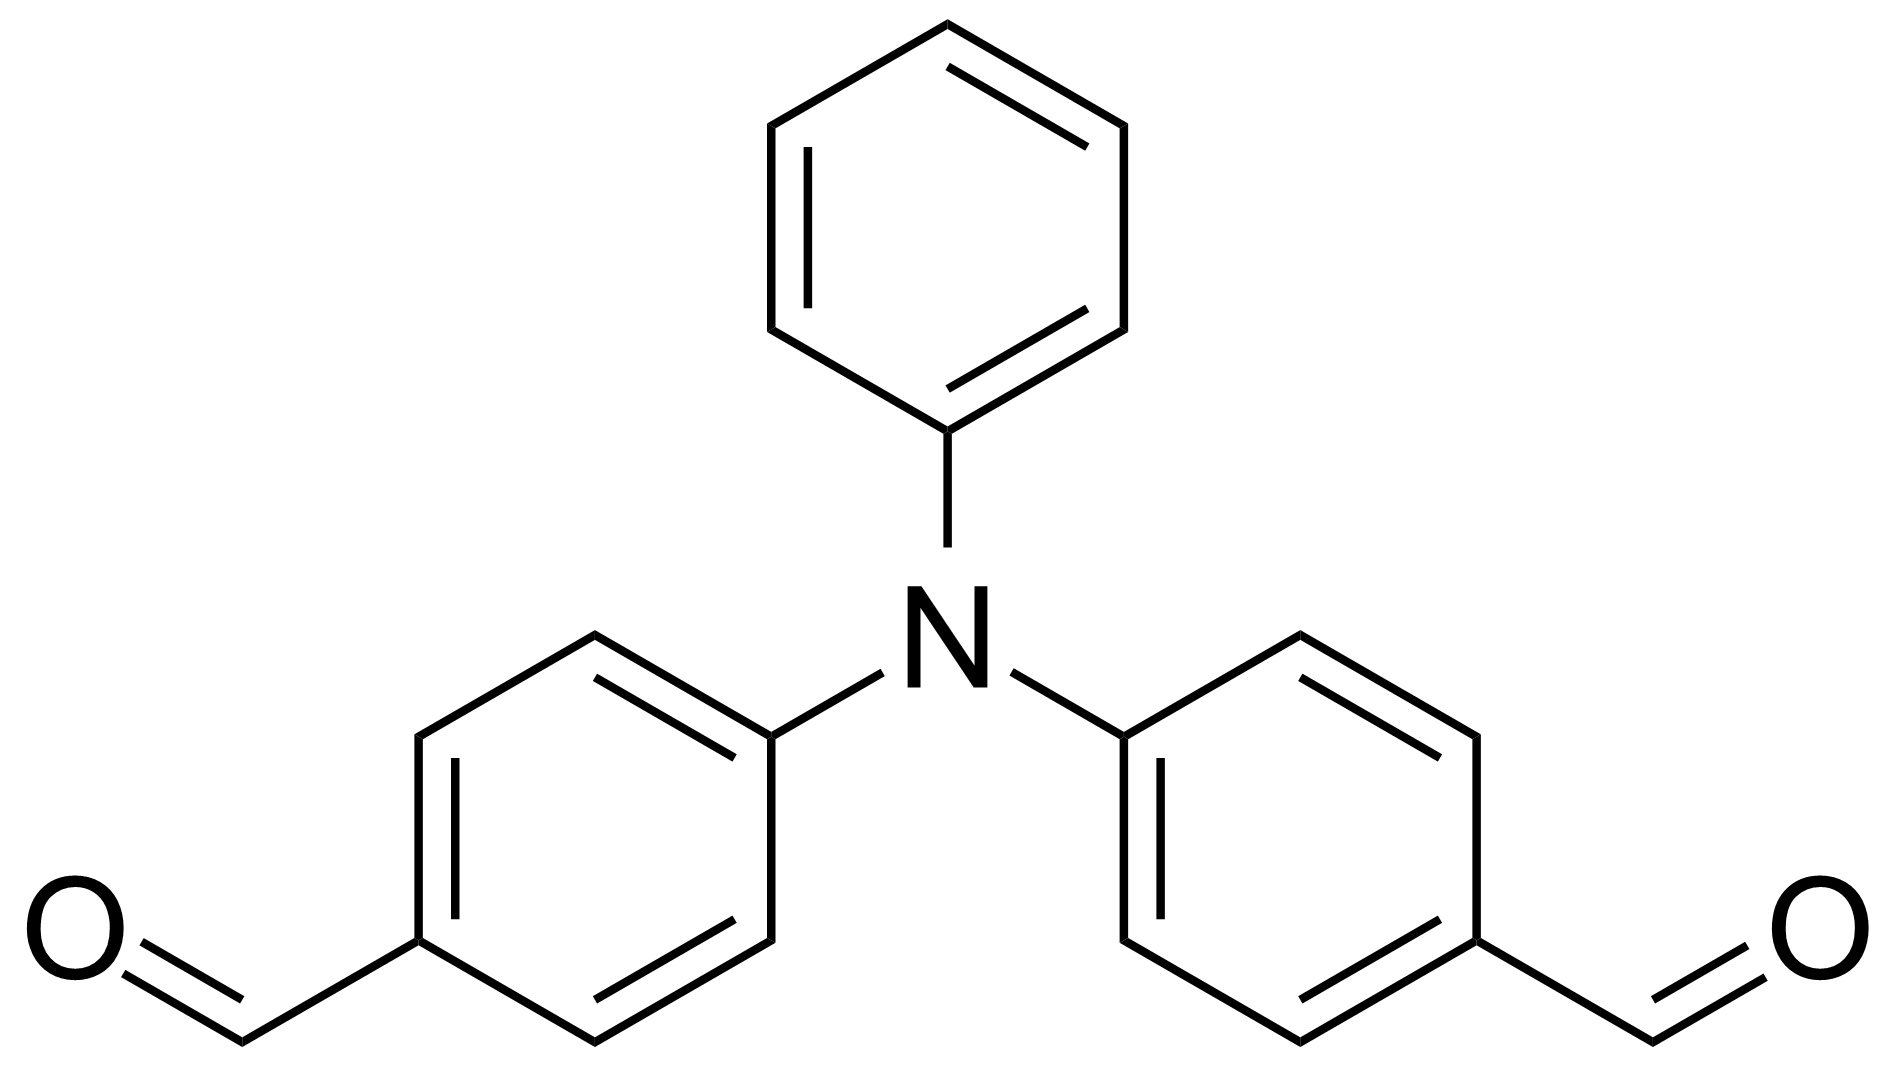 Structure of Bis(4-formylphenyl)phenylamine